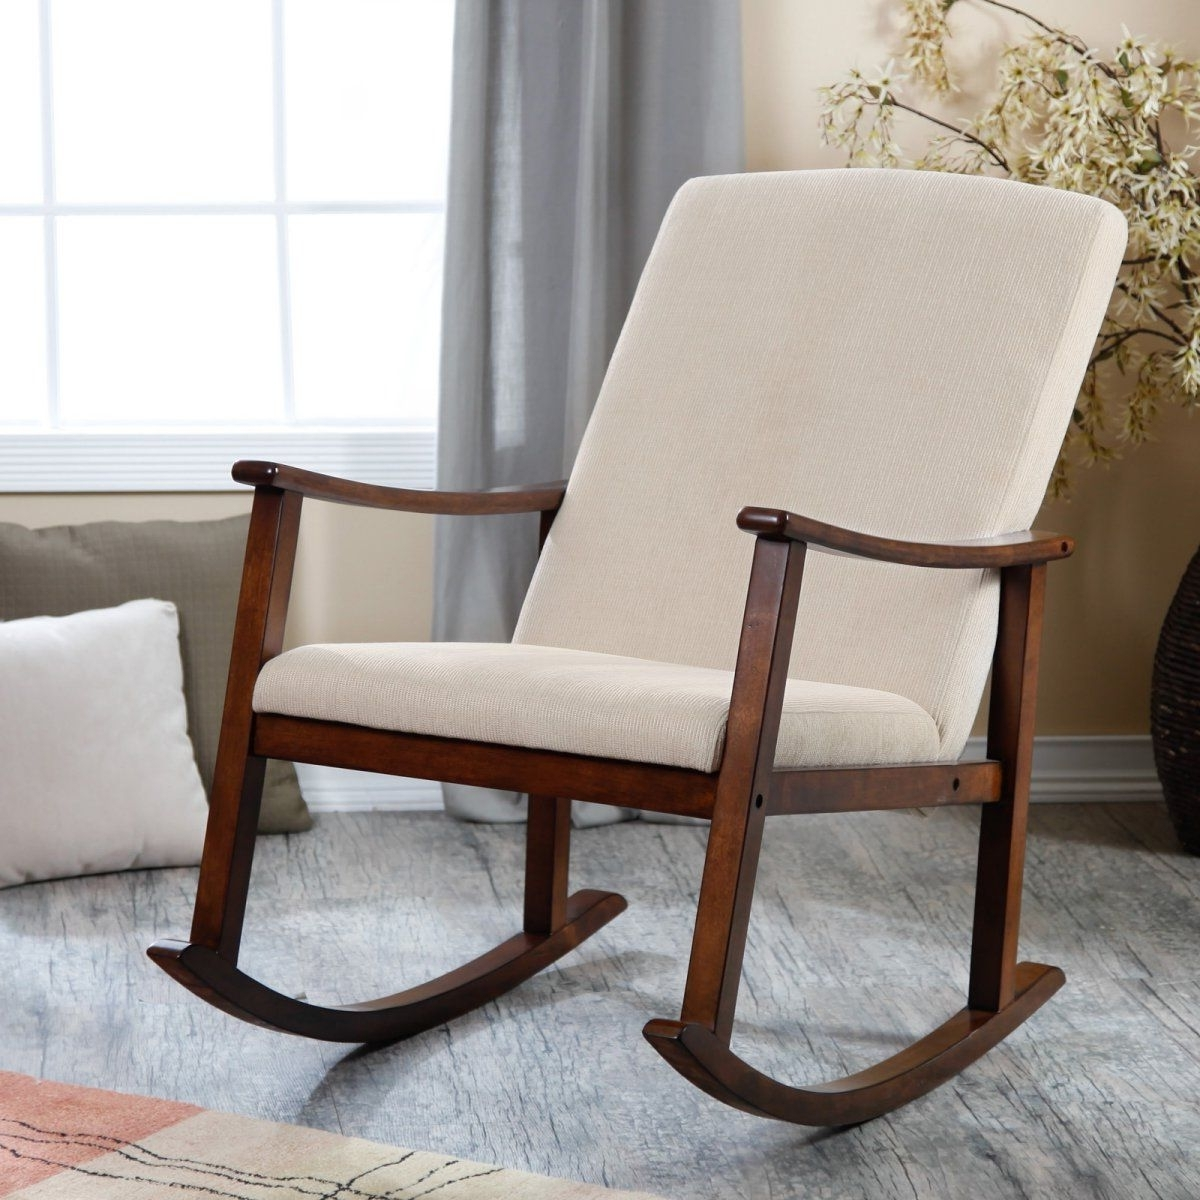 Rocking Chairs For Nursery Regarding Preferred Holden Modern Rocking Chair – Rocking Chairs At Hayneedle (View 14 of 20)